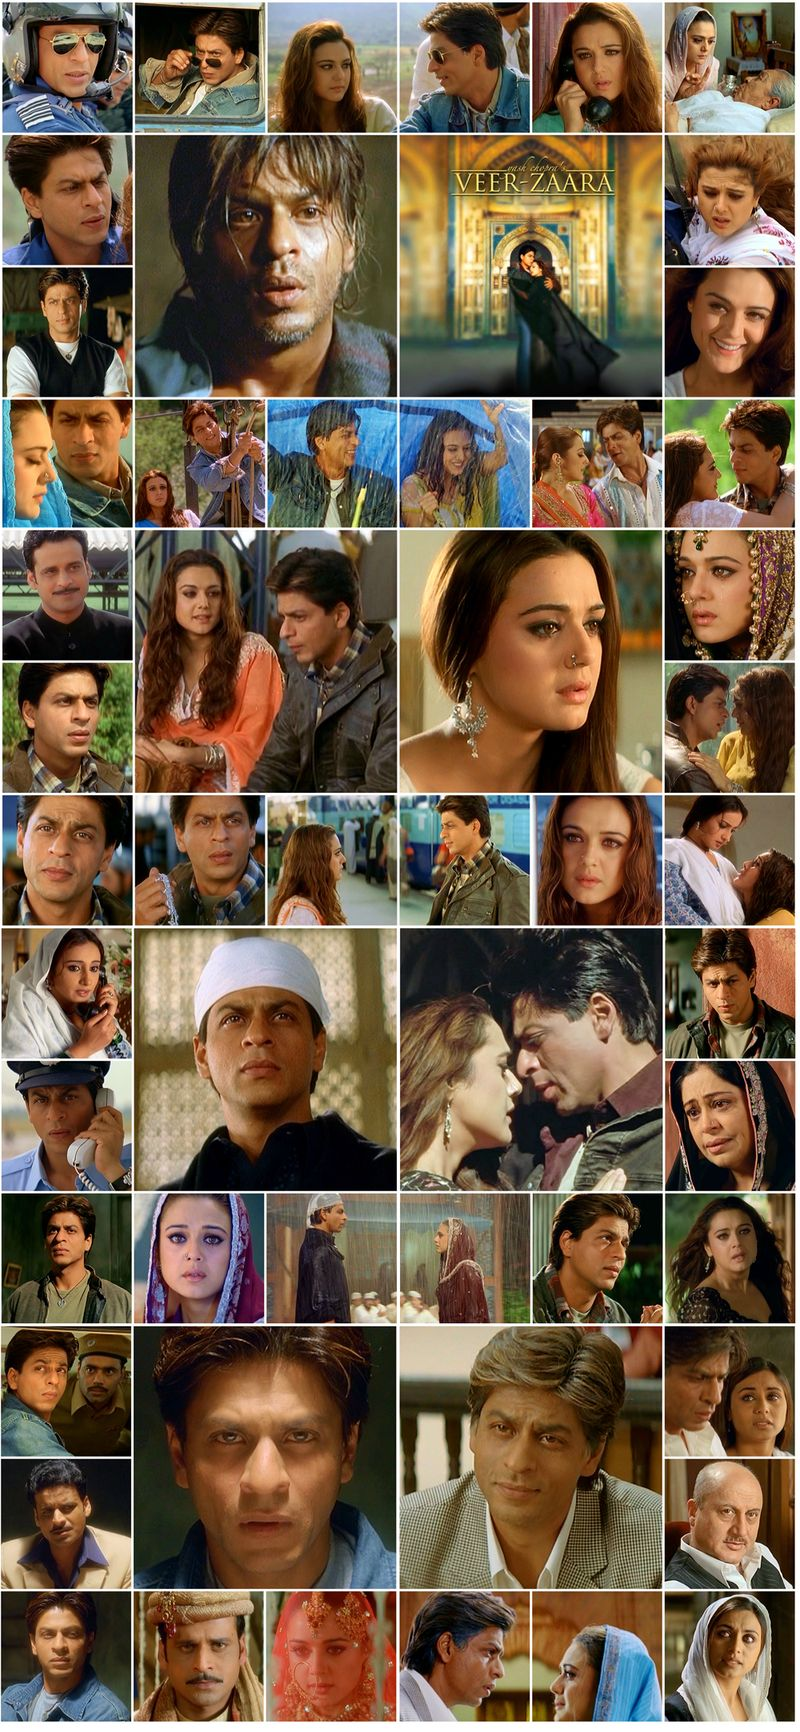 2014_Veer-Zaara-Collage-1000